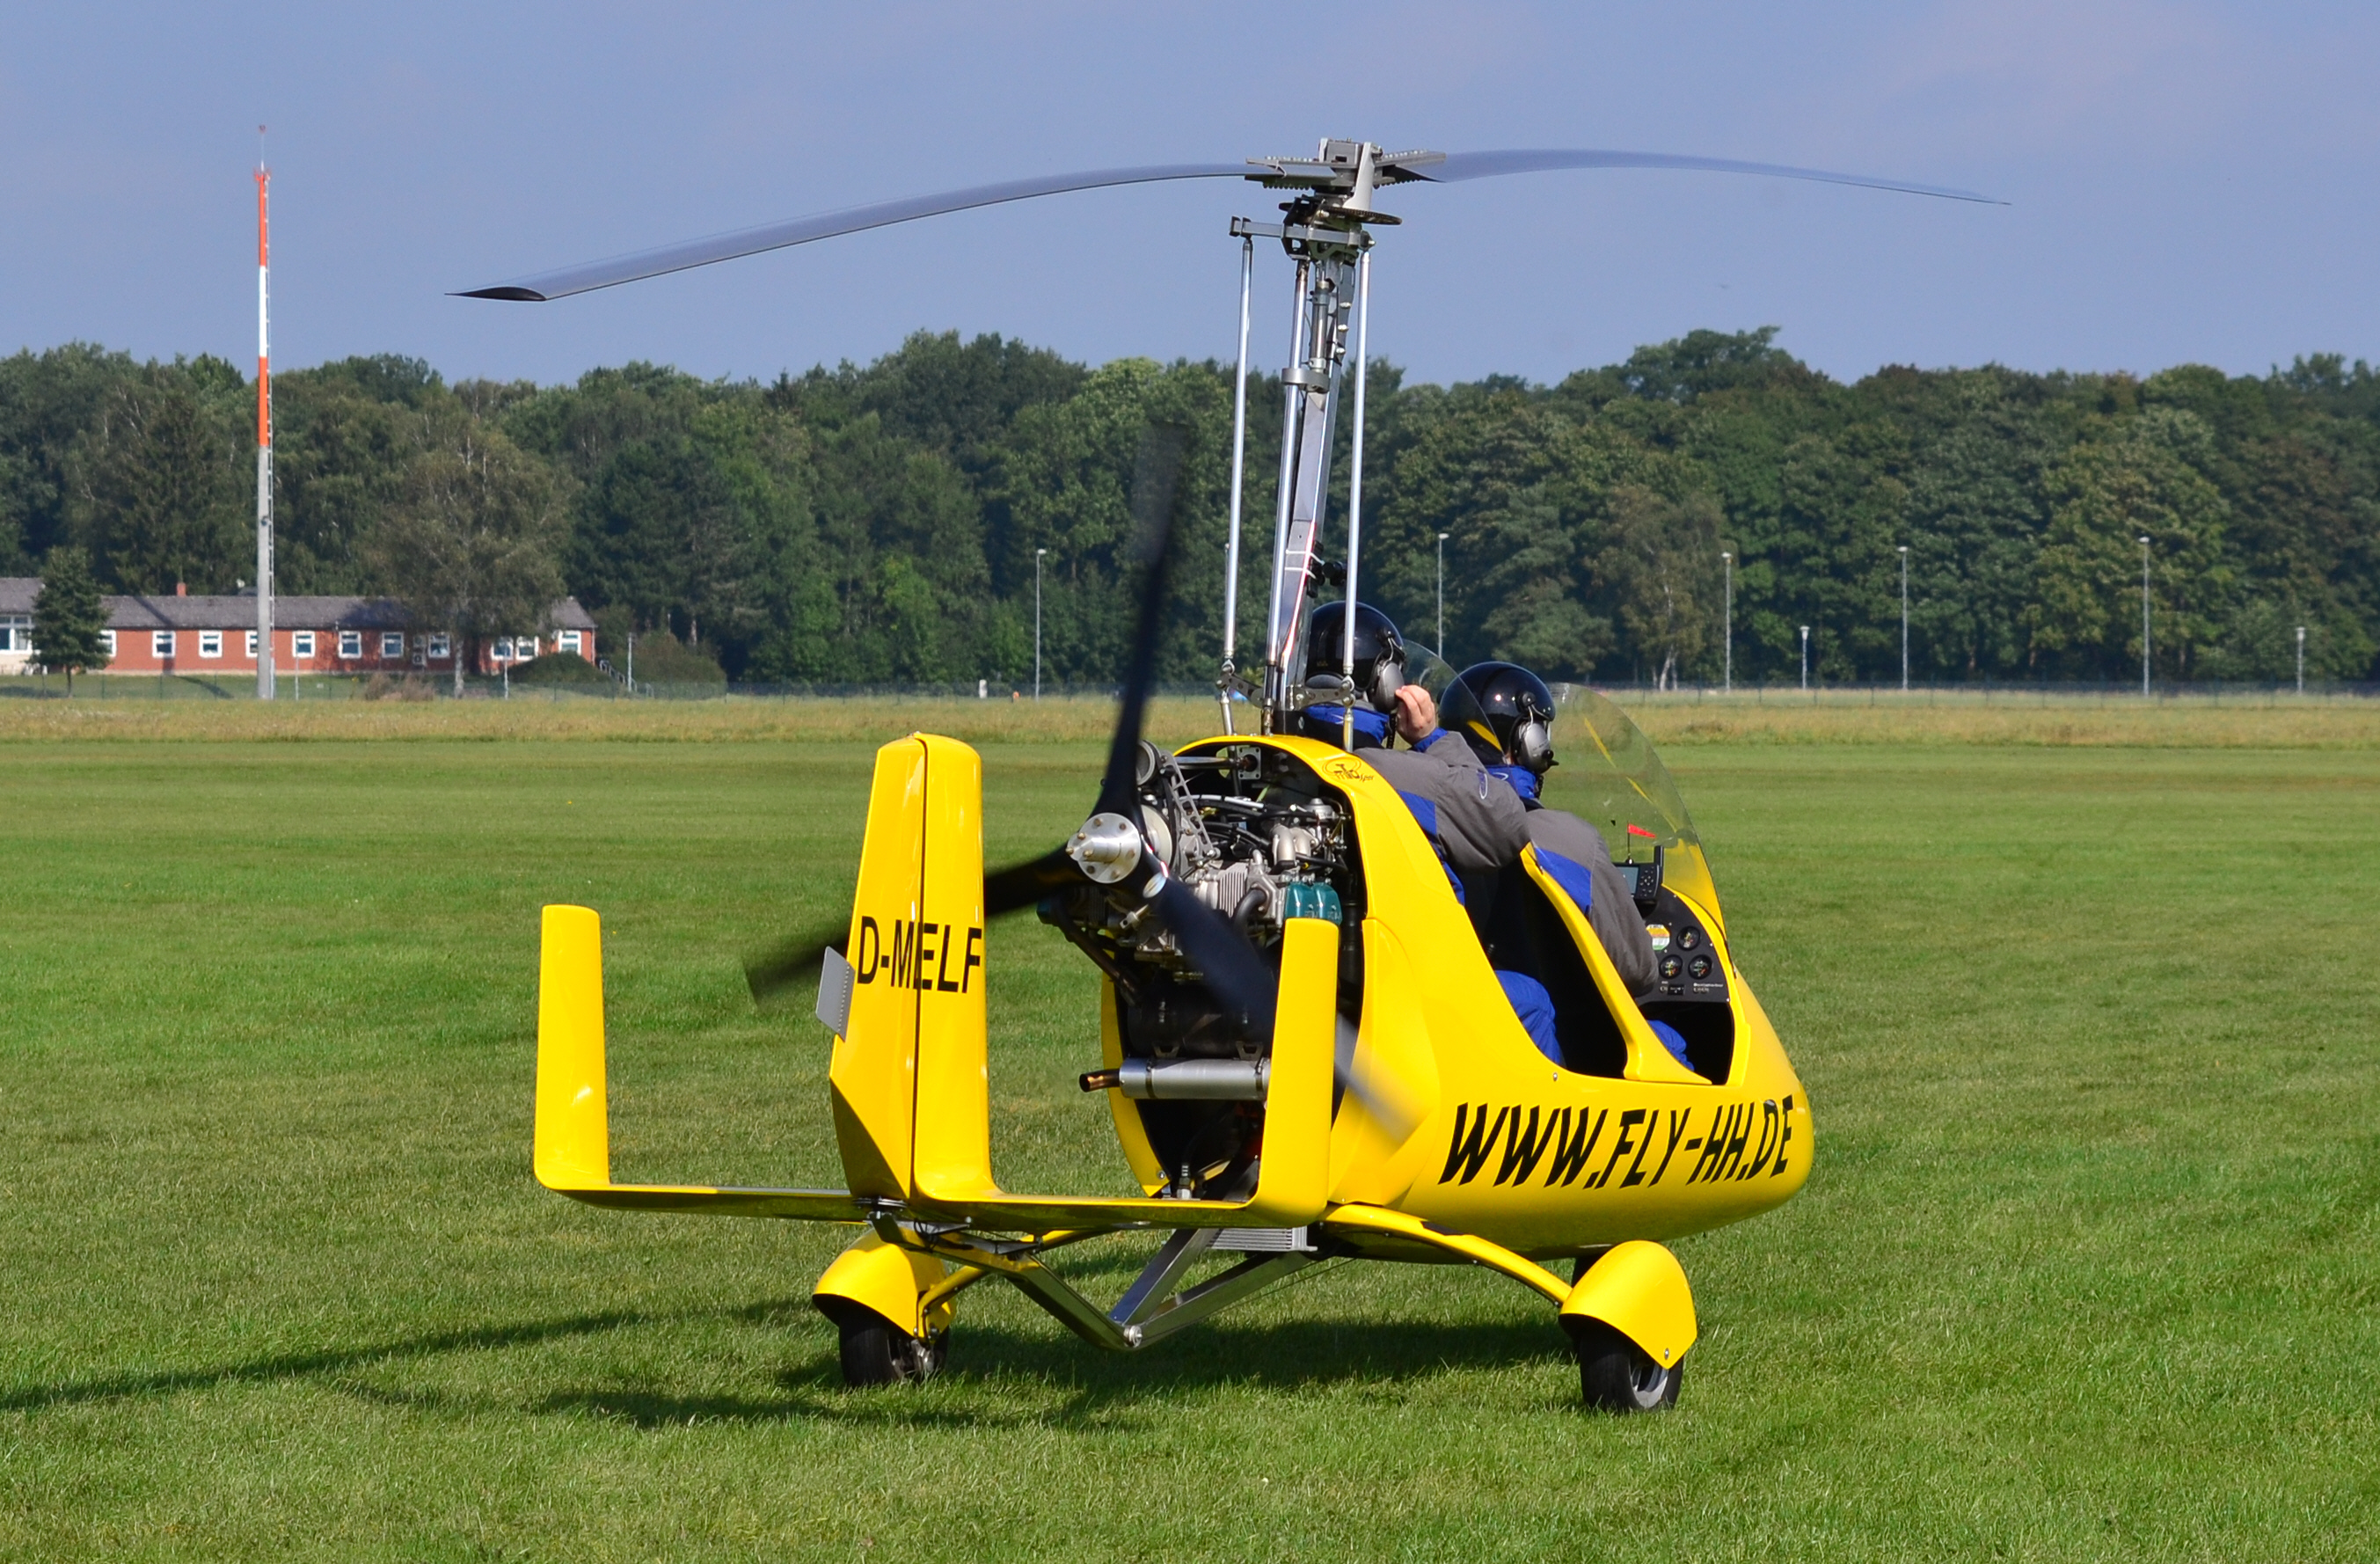 sport helicopter with Autogyro on t Terminator  t 72 Tank Support  bat Vehicle Russian 3420 as well Ann Summers Row in addition 23 additionally T 51 Mustang as well Mauritius Hiking Trekking C 19.